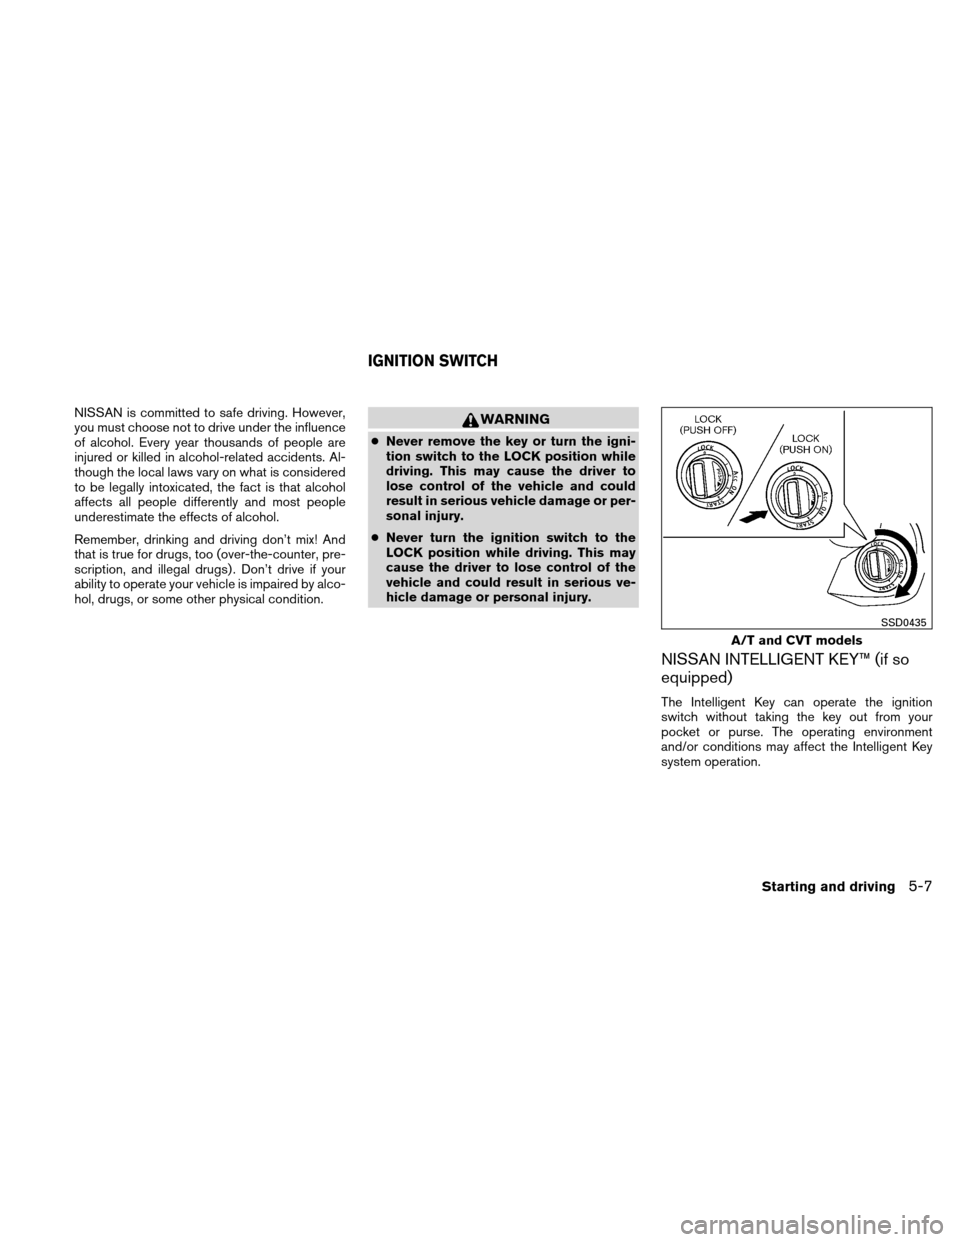 NISSAN VERSA HATCHBACK 2011 1.G Owners Manual, Page 224